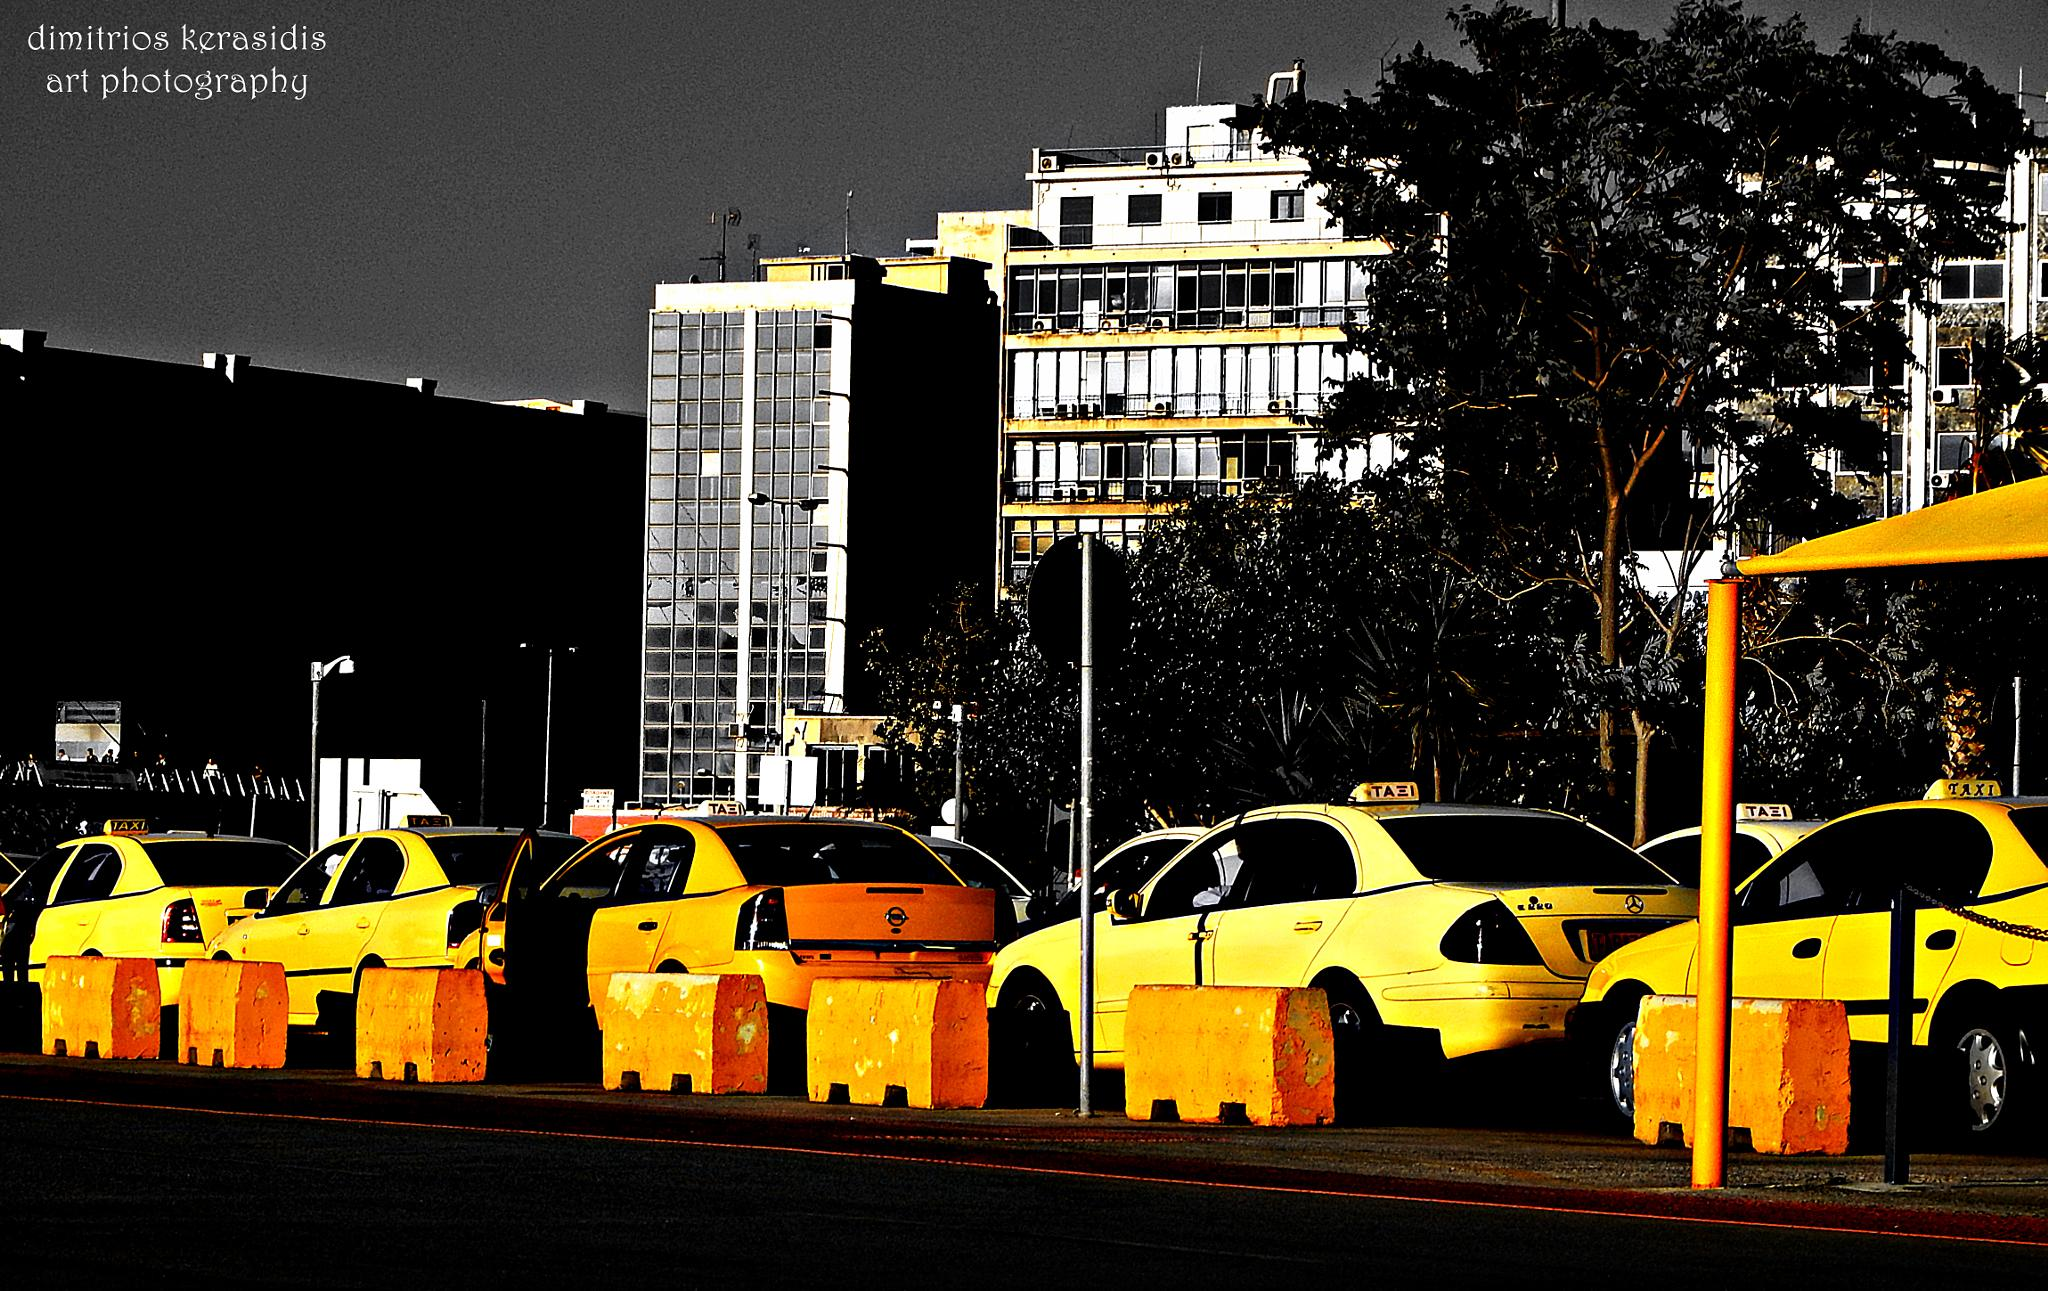 Taxi station in Piraeus central Port - Greece  by kerasidis.dimitris